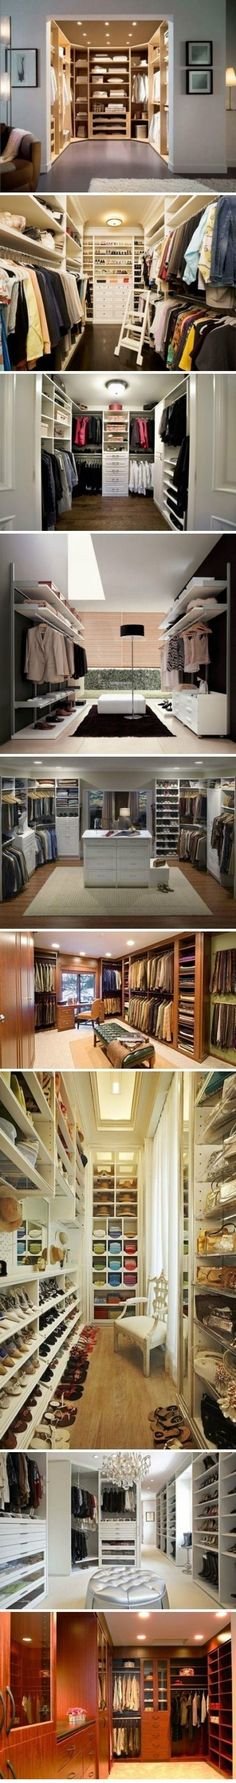 What i would give to have these closets with this many clothes :o